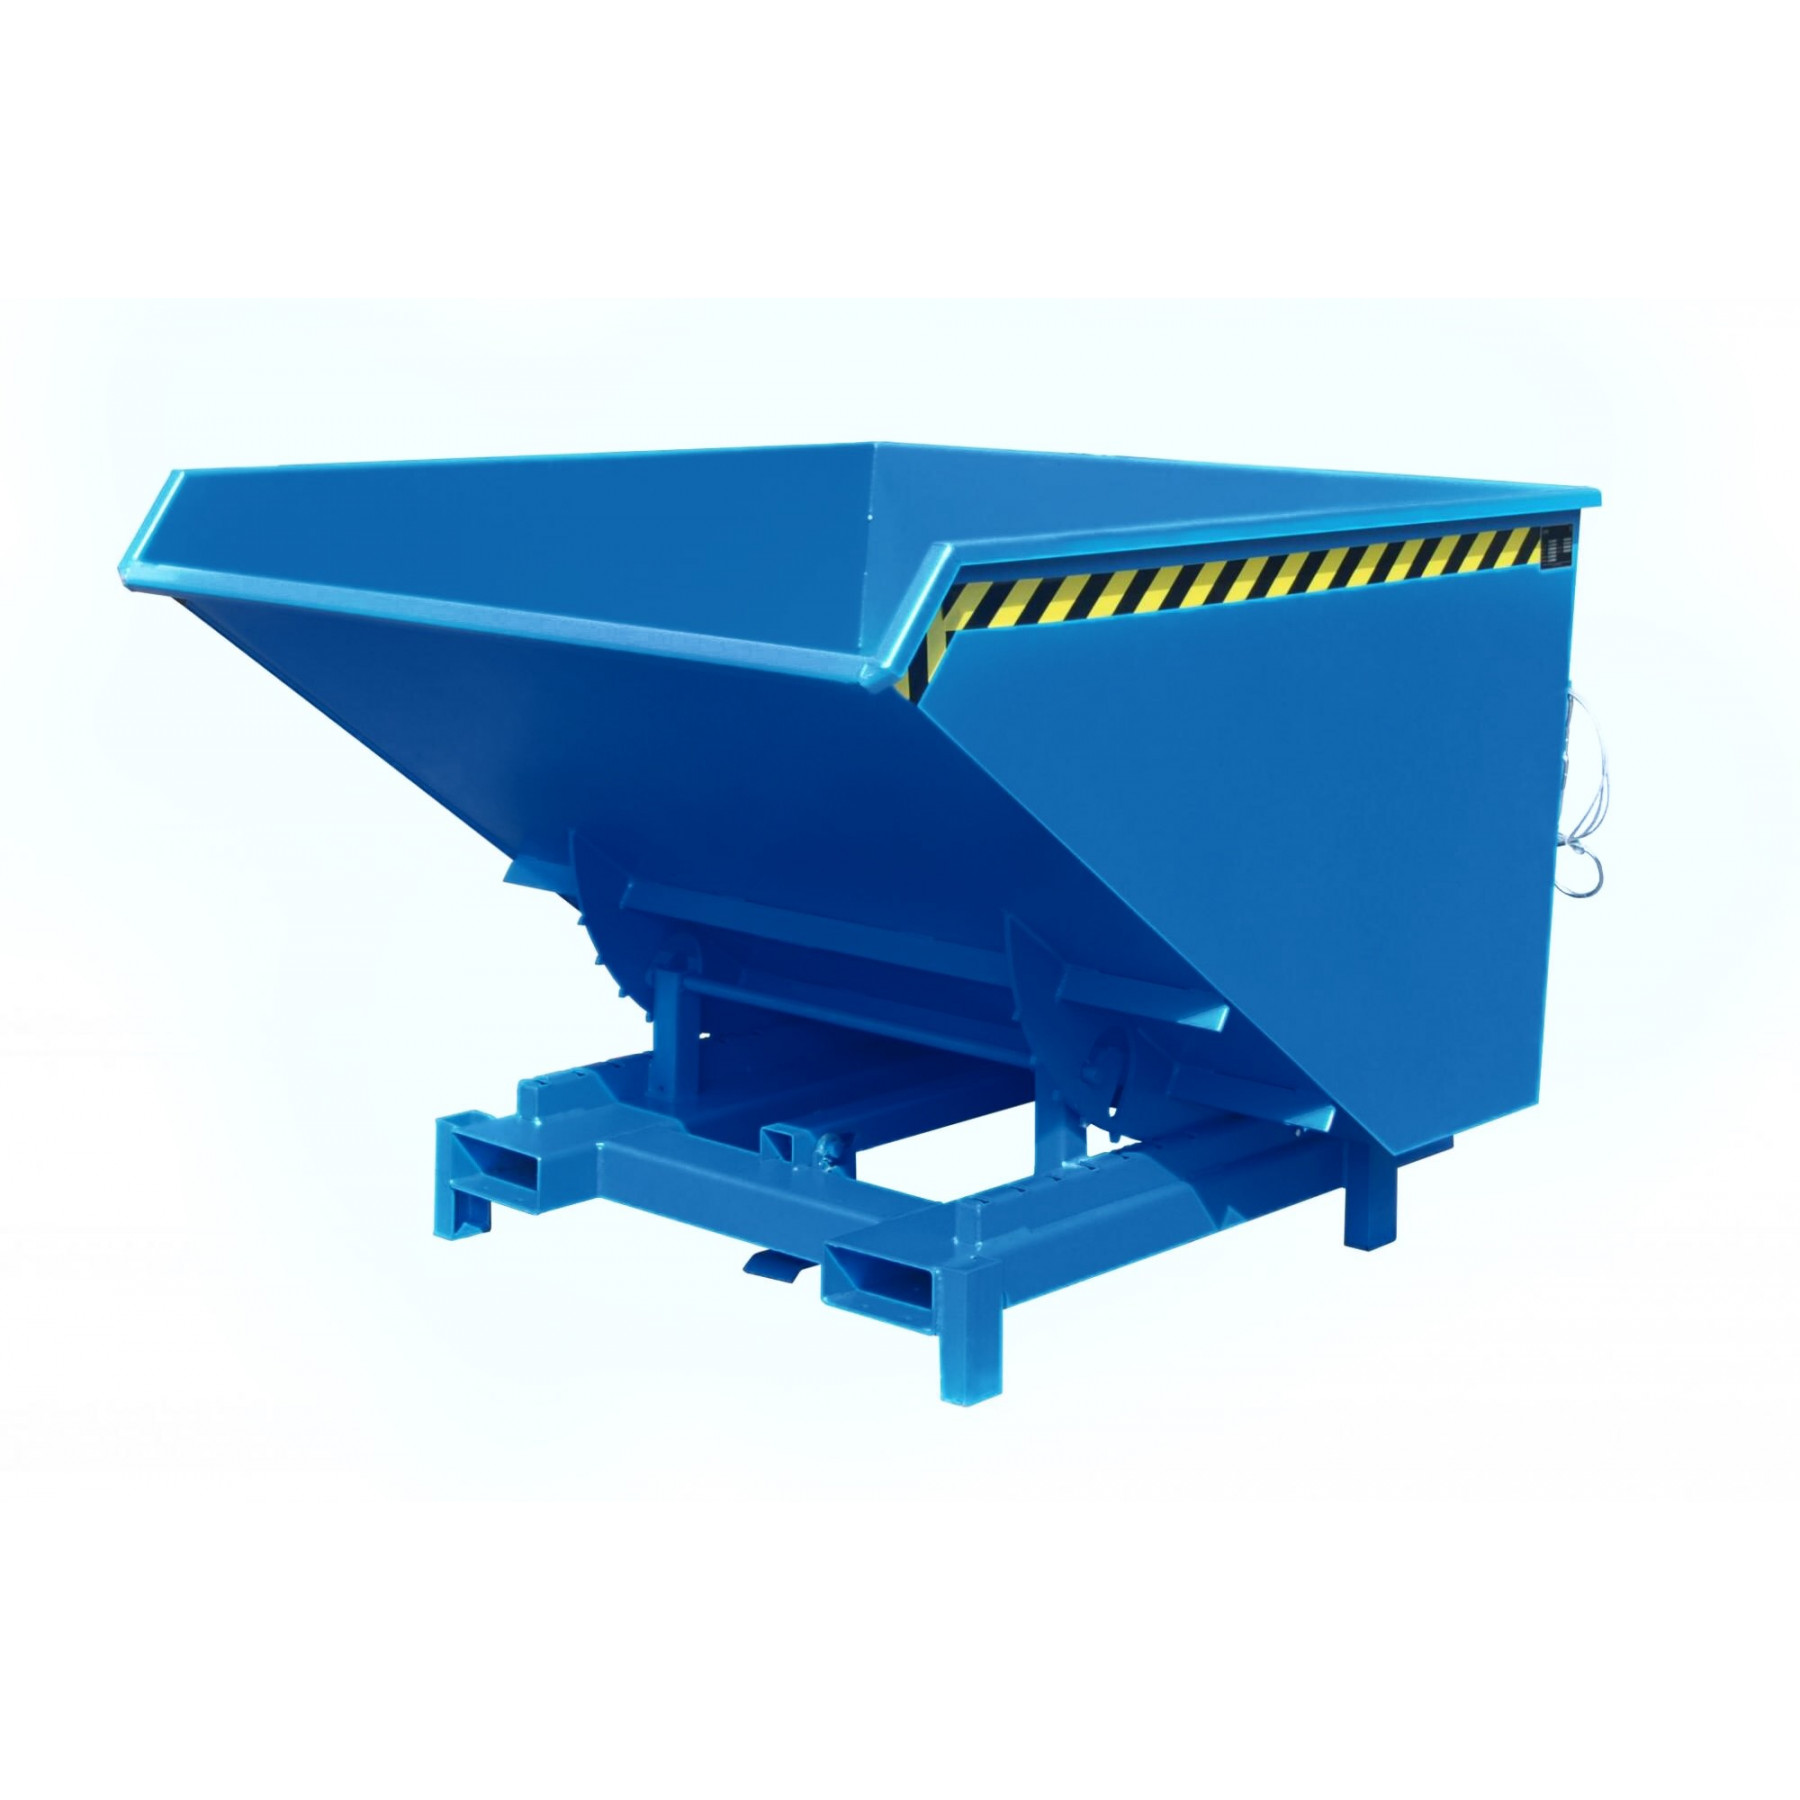 Heavy duty kiepcontainer, gelakt of verzinkt 1700 liter